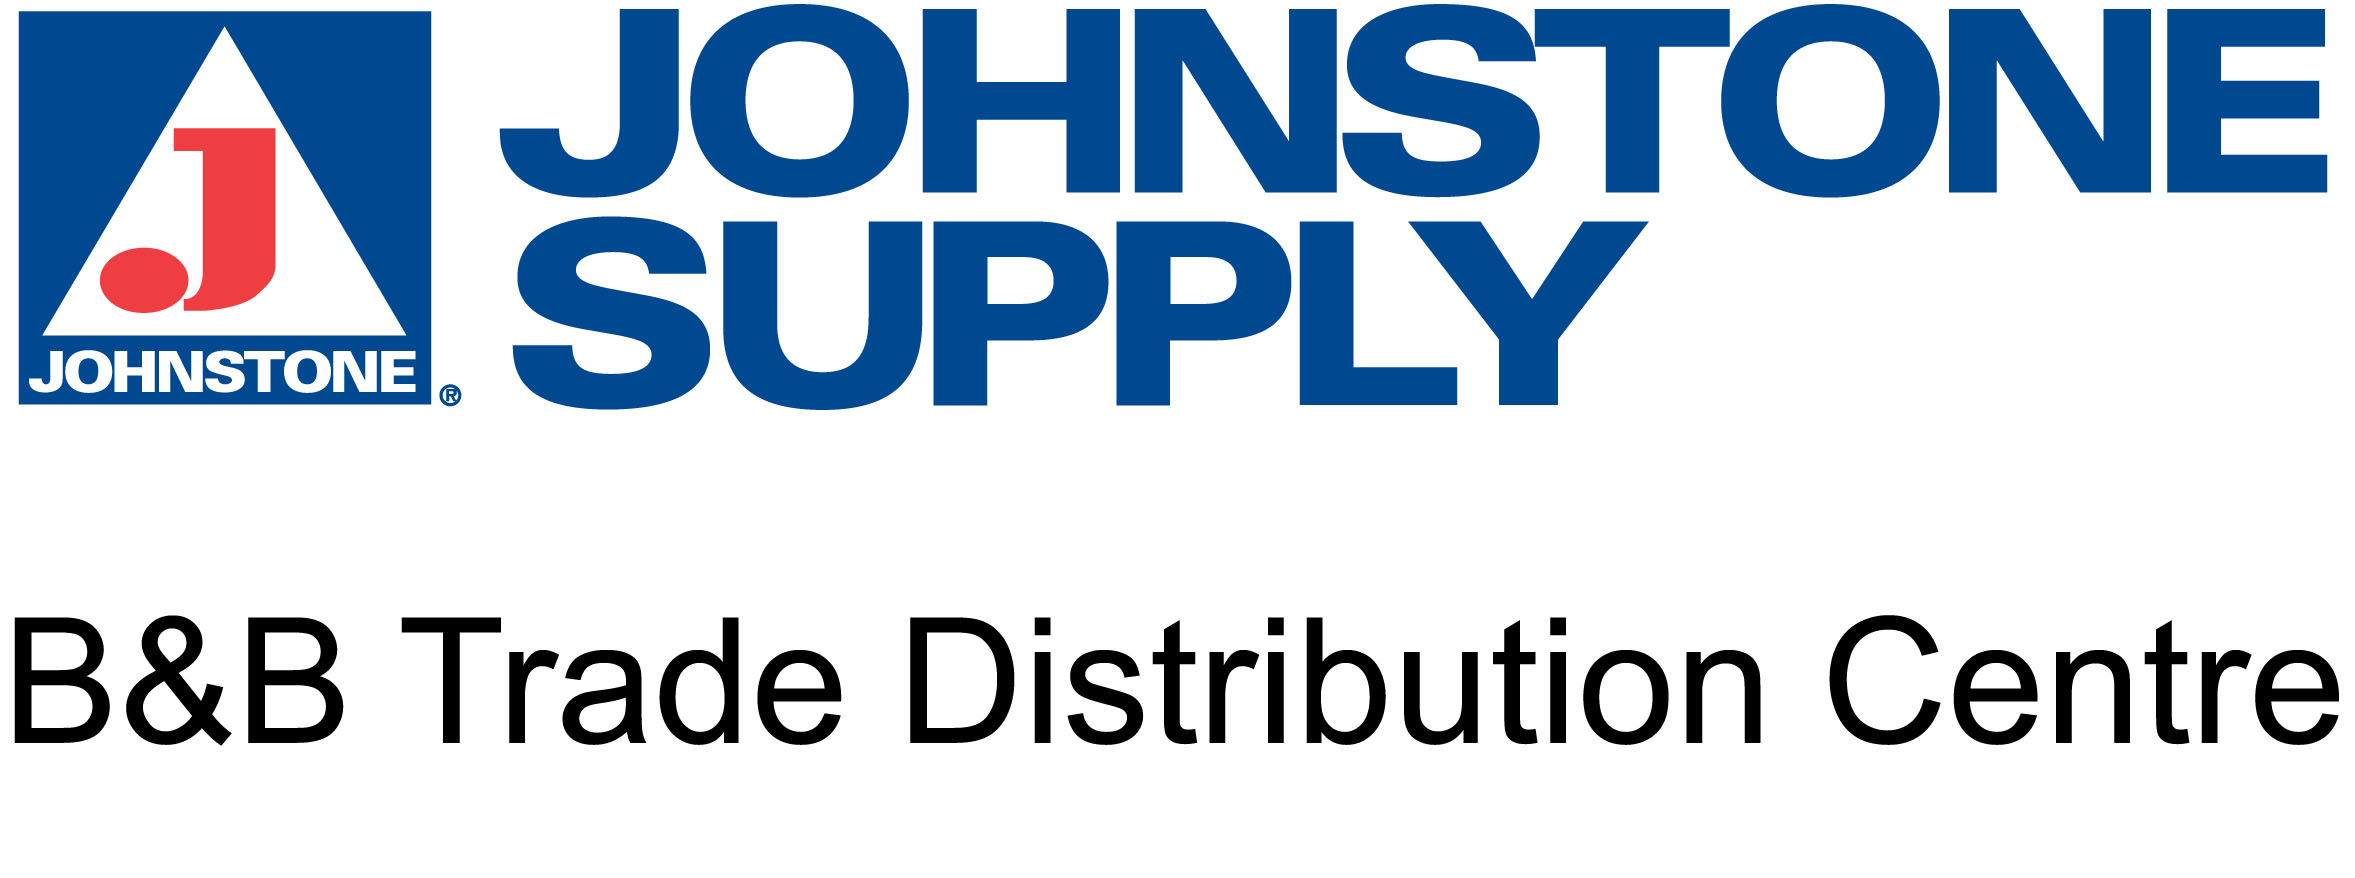 B&B-johnstone-supply-logo.jpg